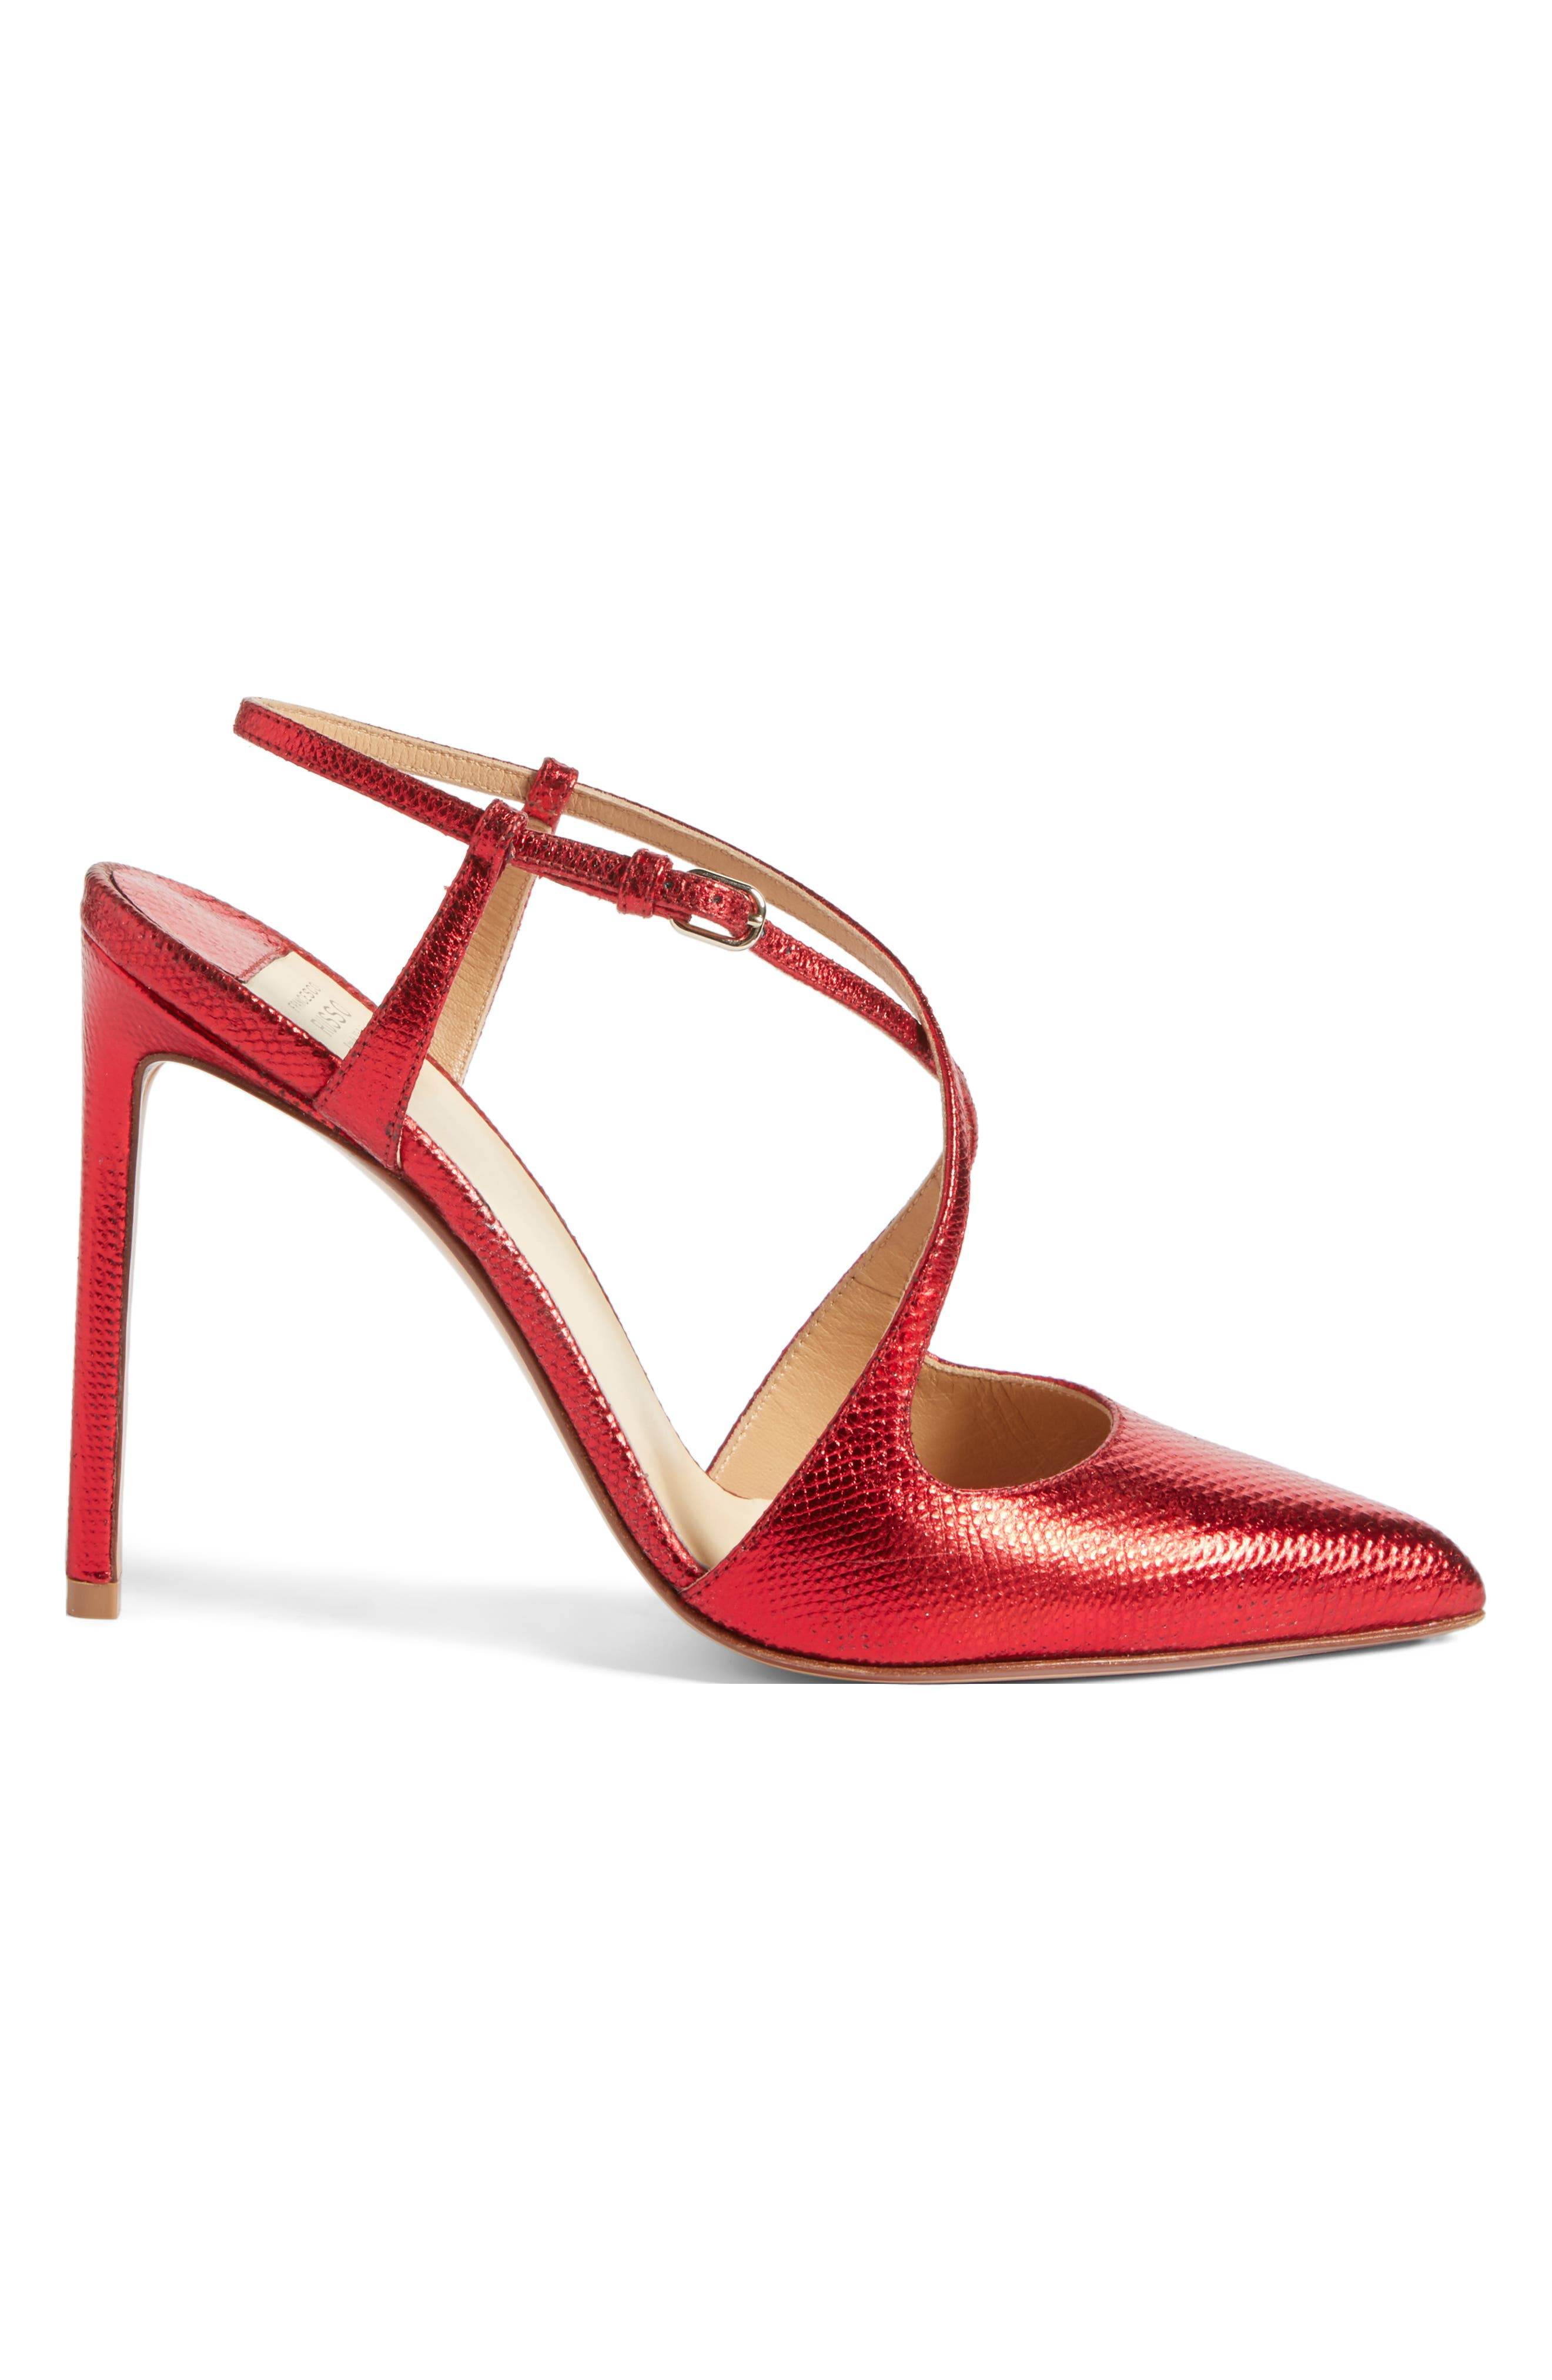 Alternate Image 3  - Francesco Russo Criss Cross Genuine Snakeskin Pump (Women)